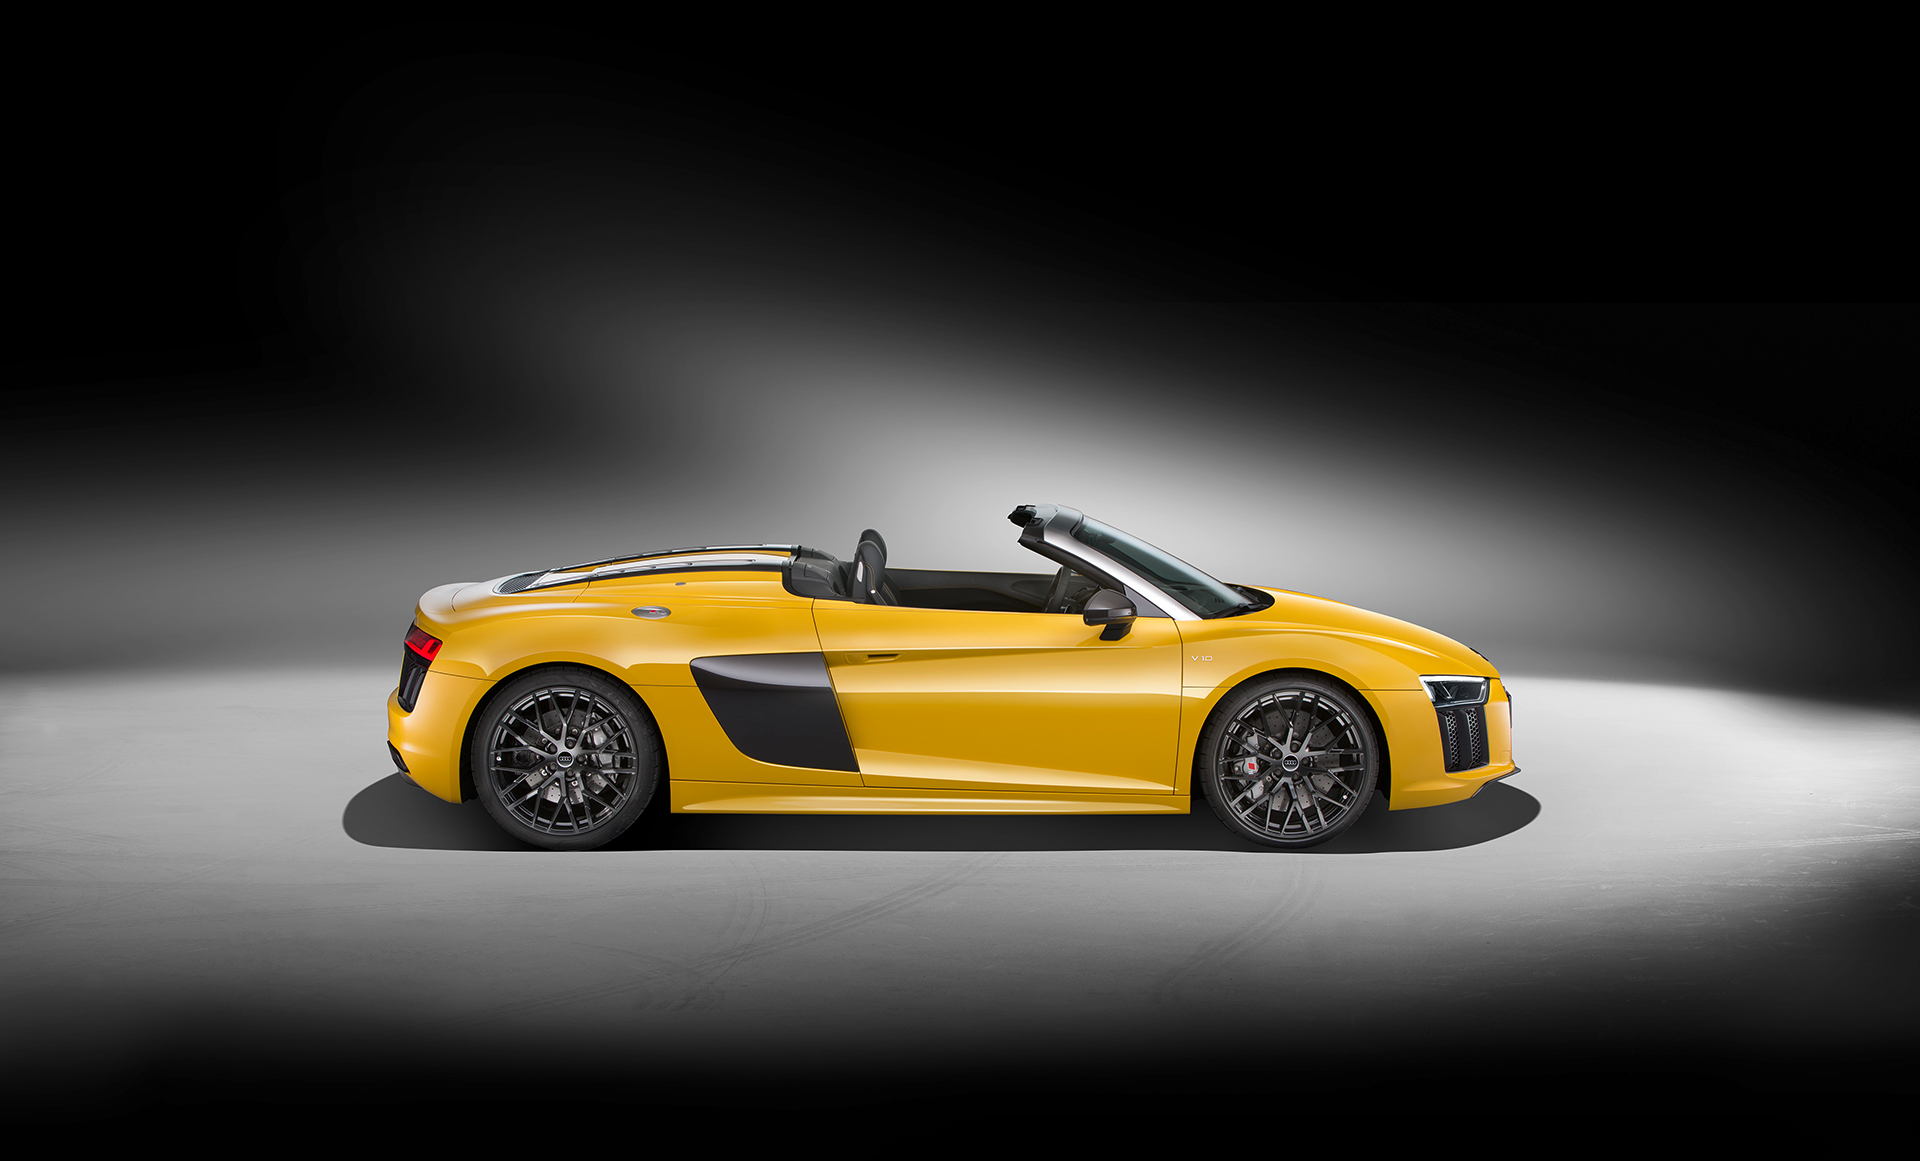 Audi R8 Spyder V10 - 2016 - side-face / profil - open top / toit ouvert